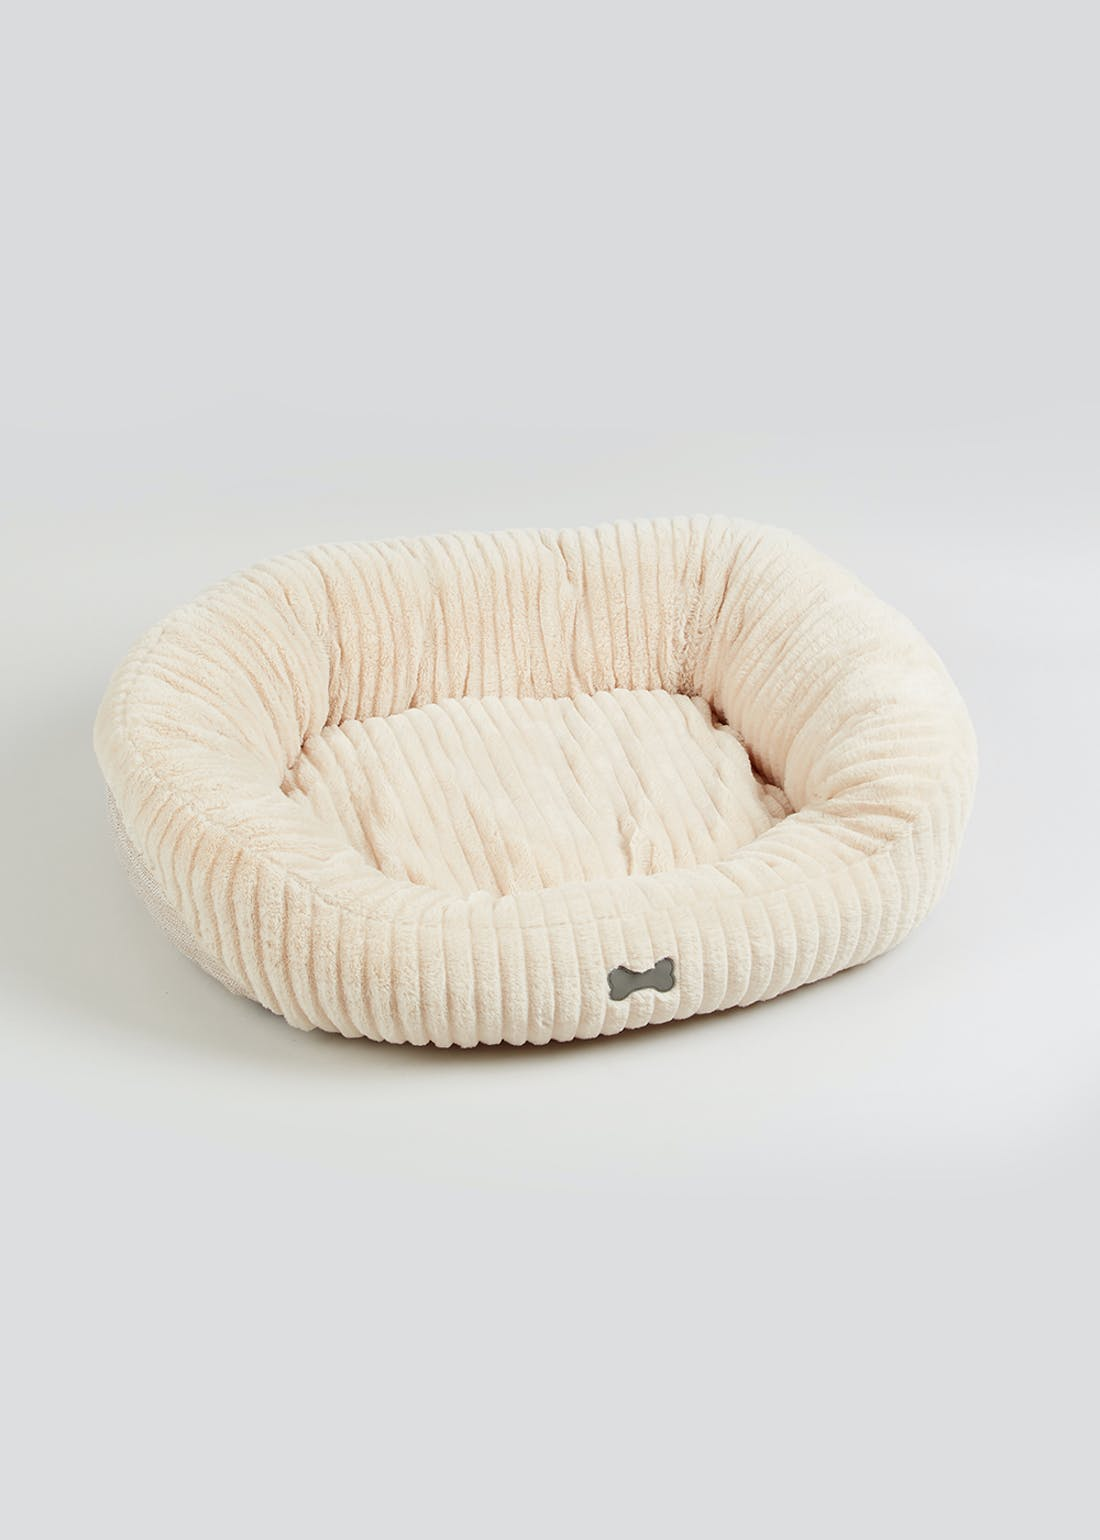 Large Faux Fur Dog Bed (80cm x 70cm x 20cm)